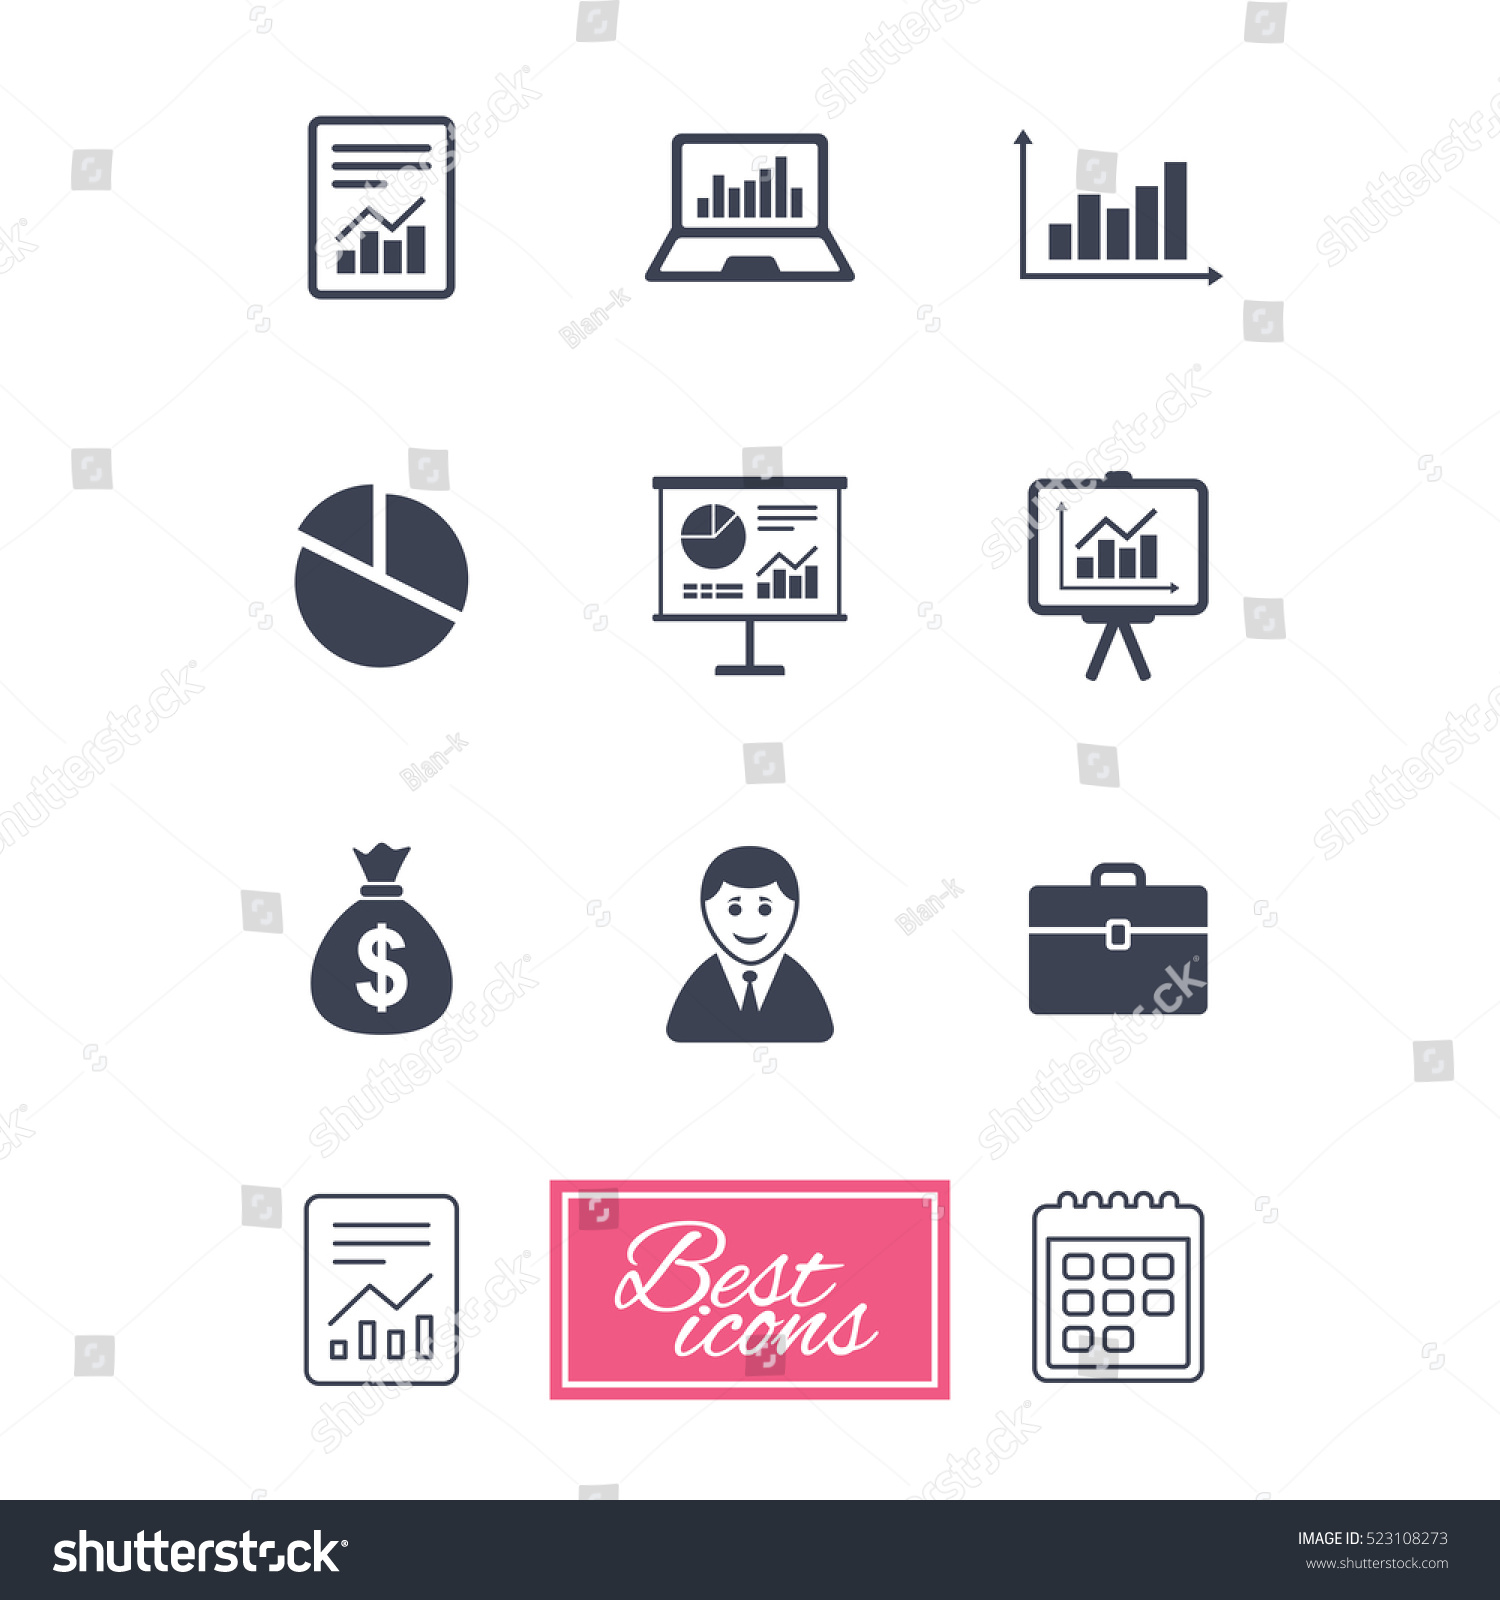 Statistics accounting icons charts presentation pie stock statistics accounting icons charts presentation and pie chart signs analysis report geenschuldenfo Choice Image